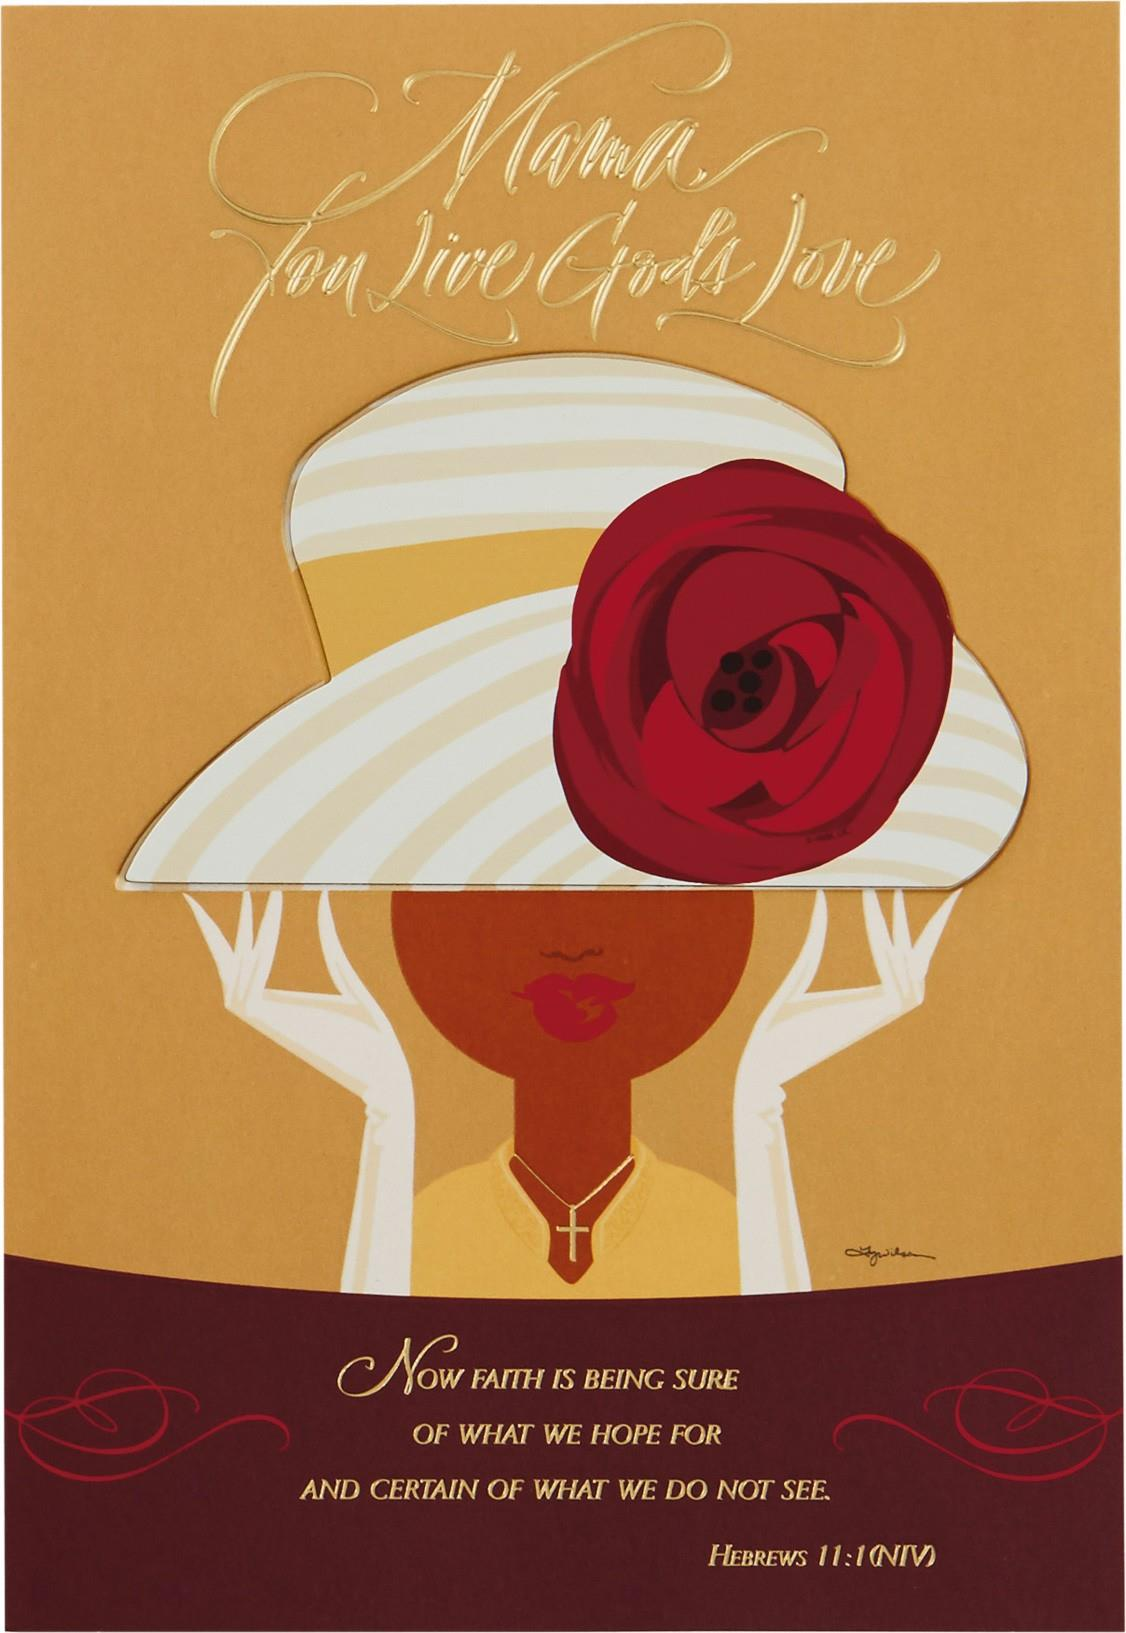 Sunday Hat Religious Mothers Day Card